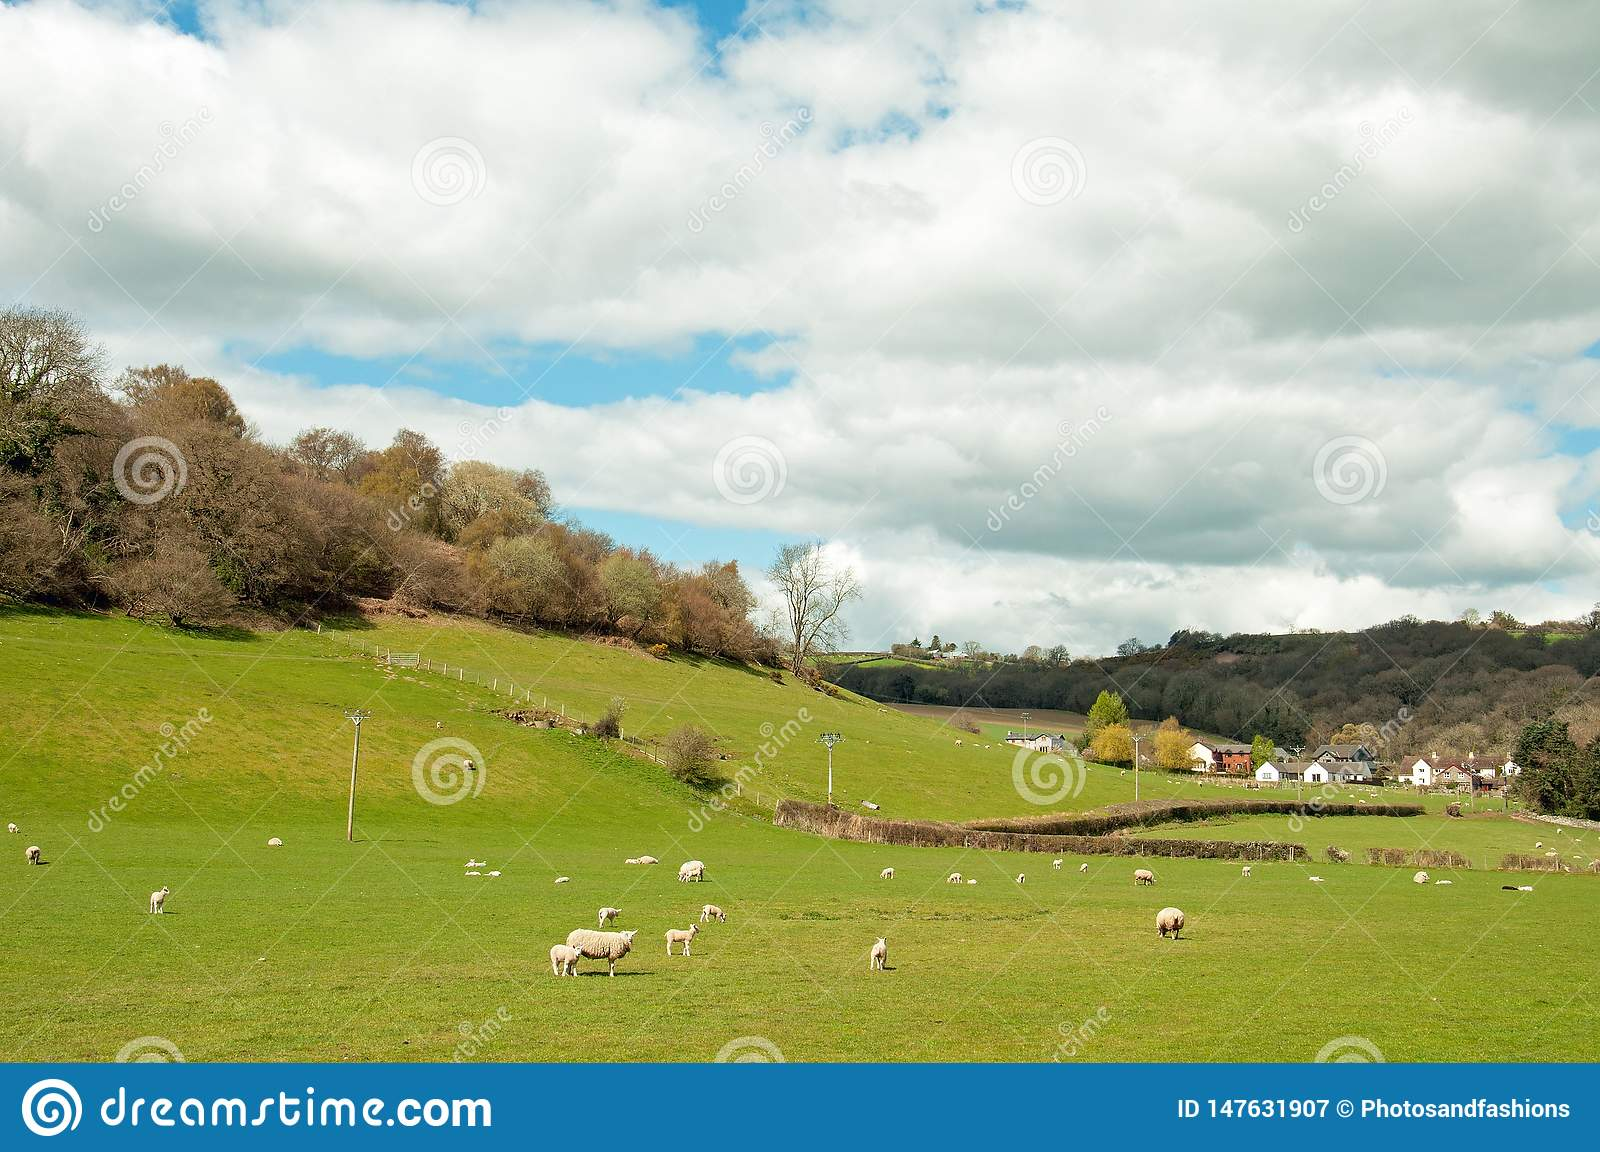 Sheep and young lambs in a springtime field in the English countryside.